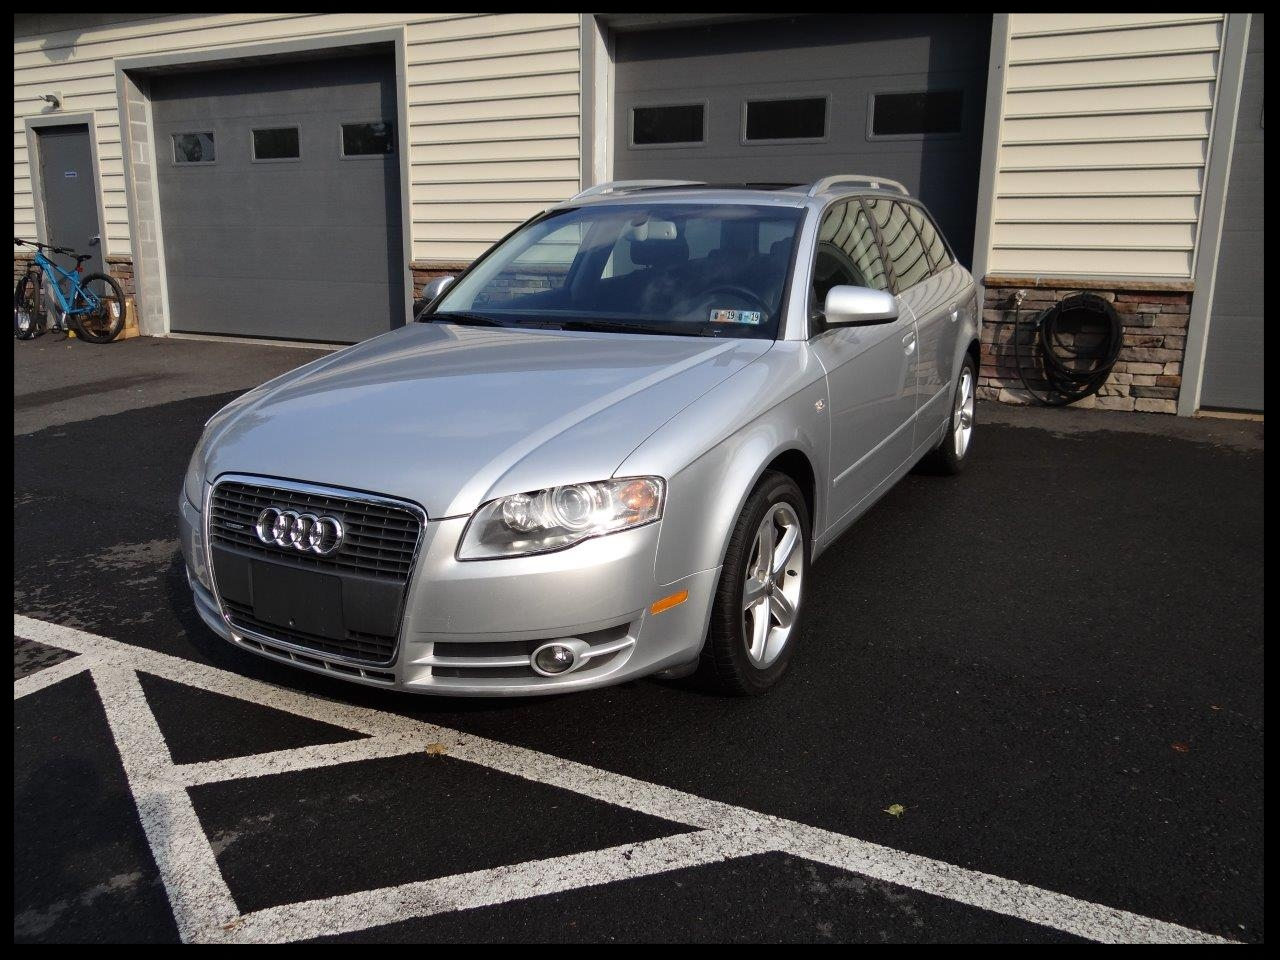 $8,499 - Make: AudiModel: A4 AvantMileage: 99,248 miExterior Color: Light Silver MetallicInterior Color: BlackTransmission: AutoEngine: 3.2 LDrivetrain: QuattroVIN: WAUKH78E67A031832